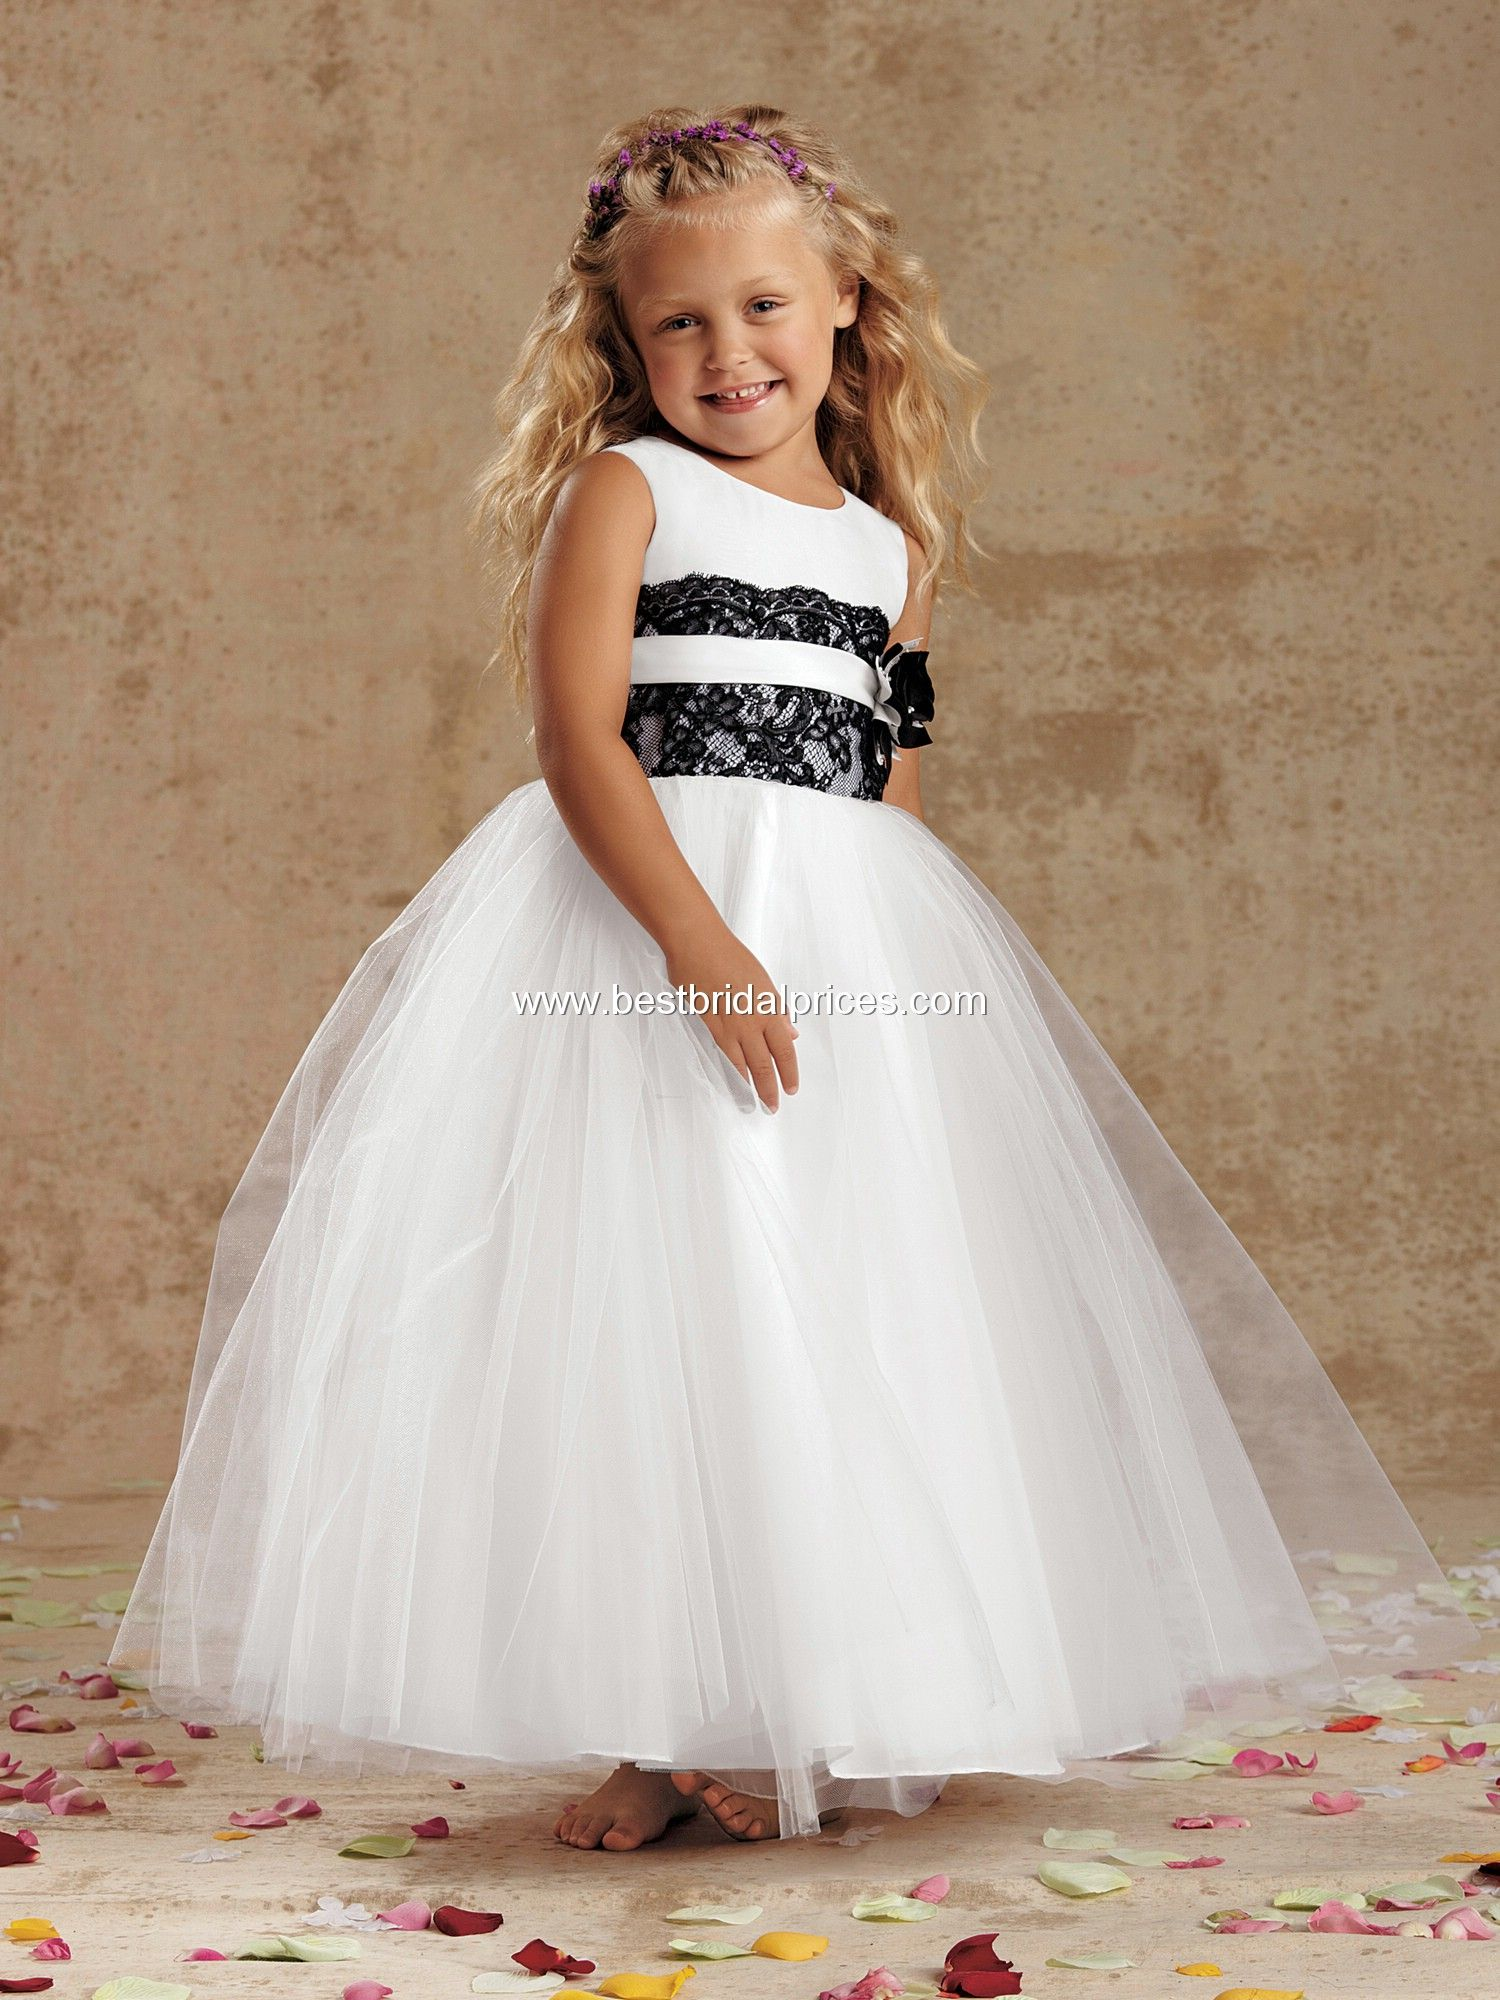 Jordan sweet beginnings flower girl dresses style l964k964 cheap dresses for cheap prices buy quality girl dress winter directly from china girls dress size 16 suppliers ball gown floor length black lace waistband izmirmasajfo